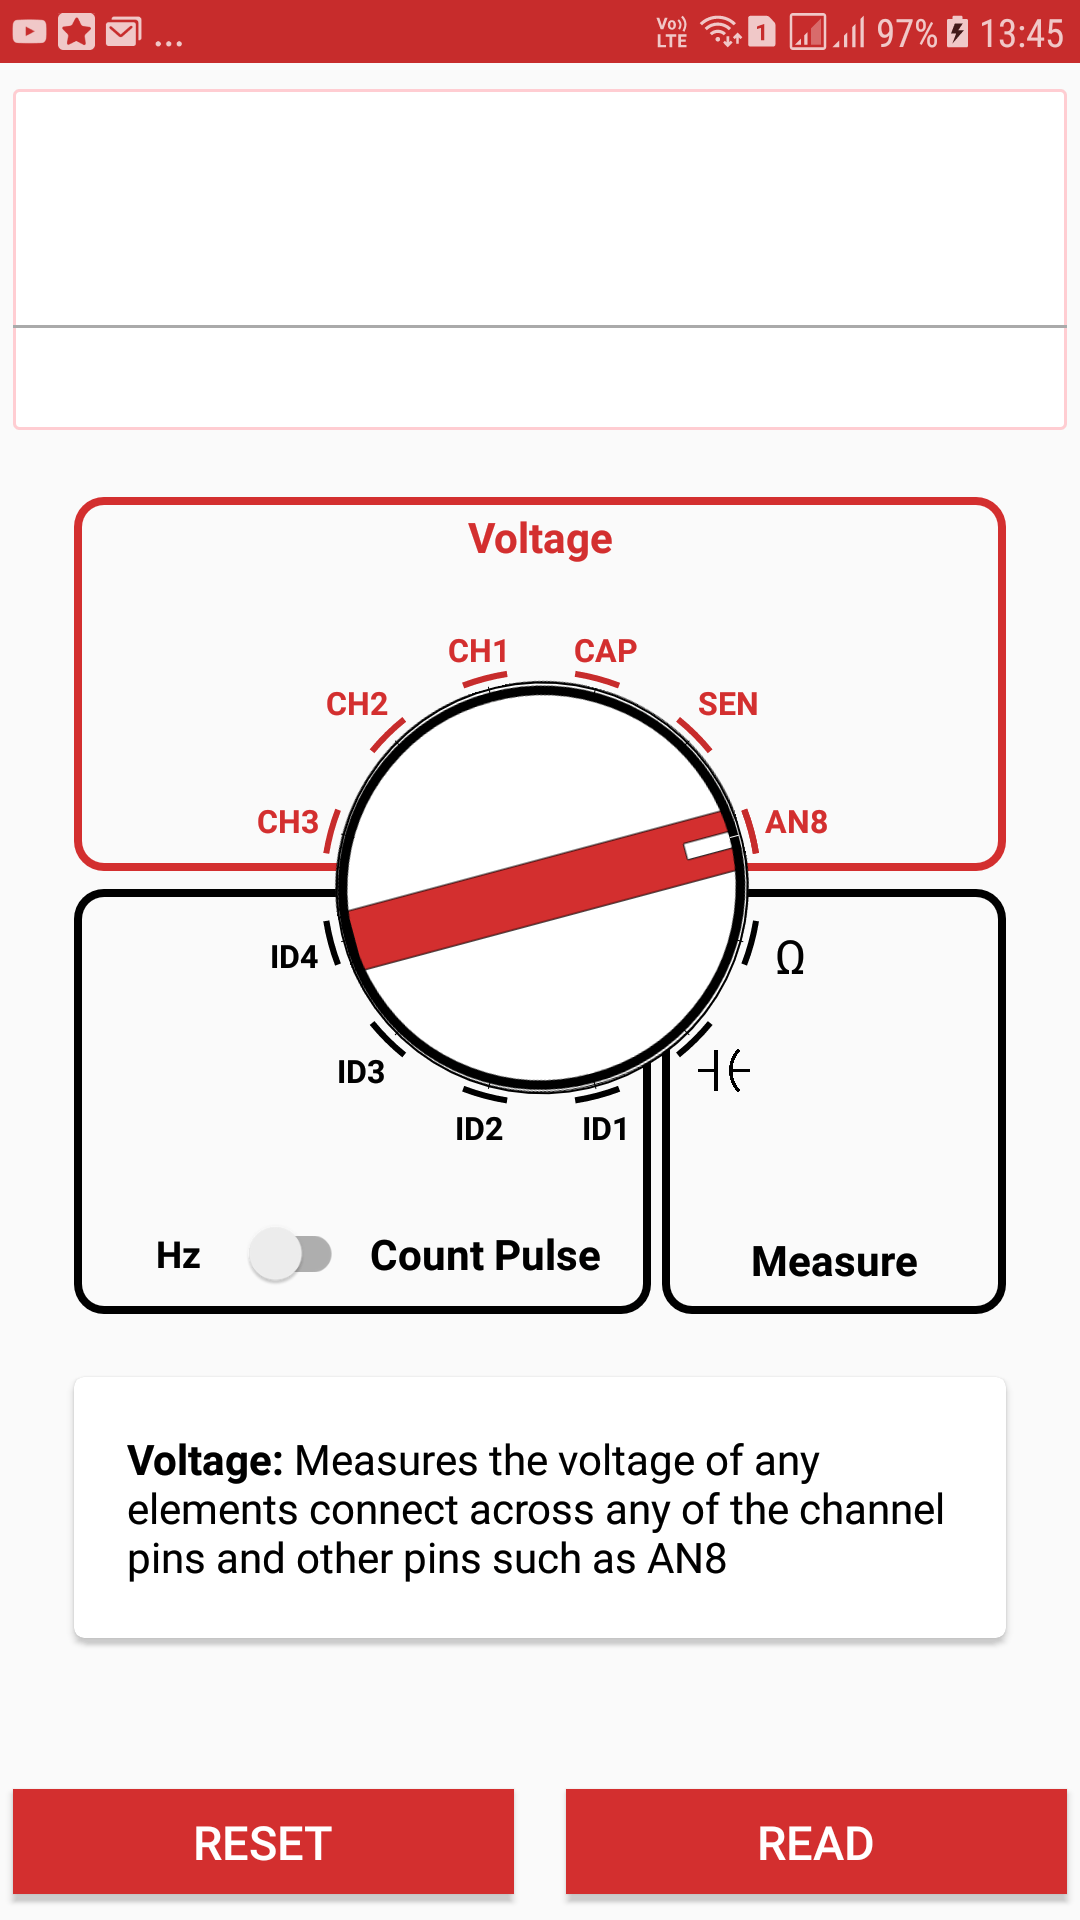 Implementing Custom Rotary Knobs and Circular Positioning in the Multimeter in the PSLab Android App